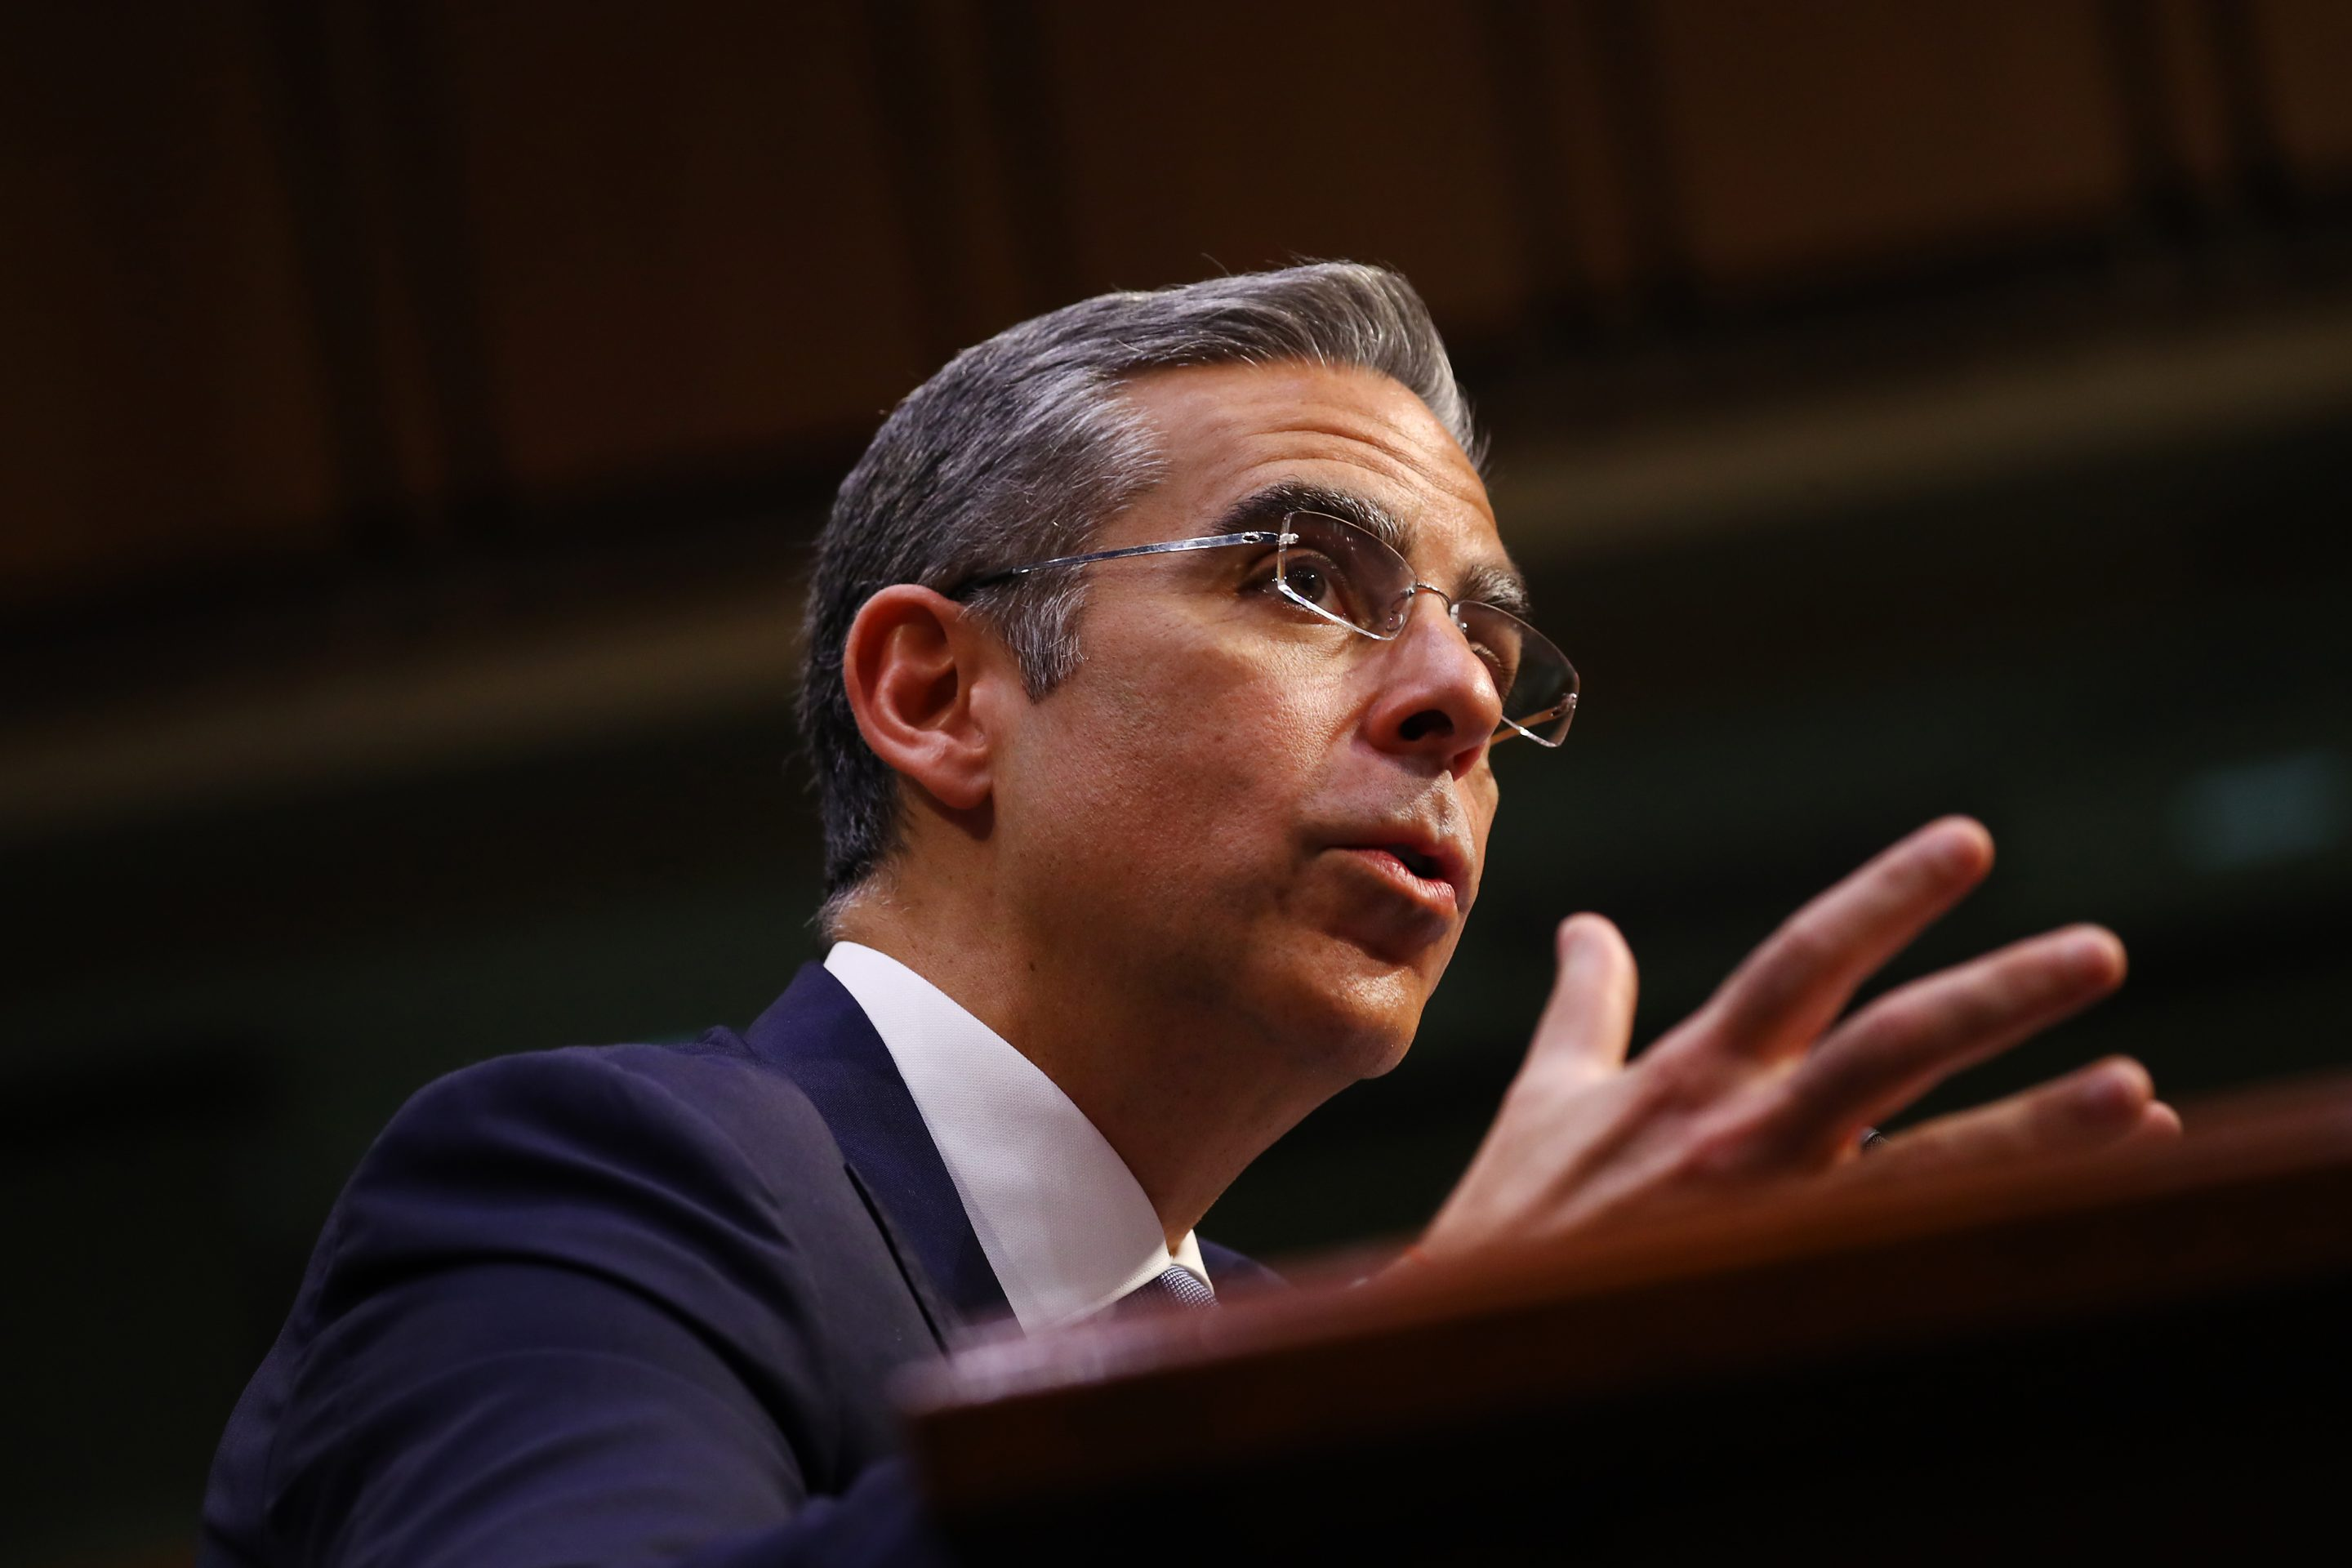 David Marcus, head of blockchain with Facebook Inc., speaks during a Senate Banking Committee hearing in Washington, D.C., U.S., on Tuesday, July 16, 2019. Facebook won't launch Libra, the controversial cryptocurrency it's planning to build with dozens of partner firms, until regulators' concerns are fully addressed, according to Marcus. Photographer: Andrew Harrer/Bloomberg via Getty Images